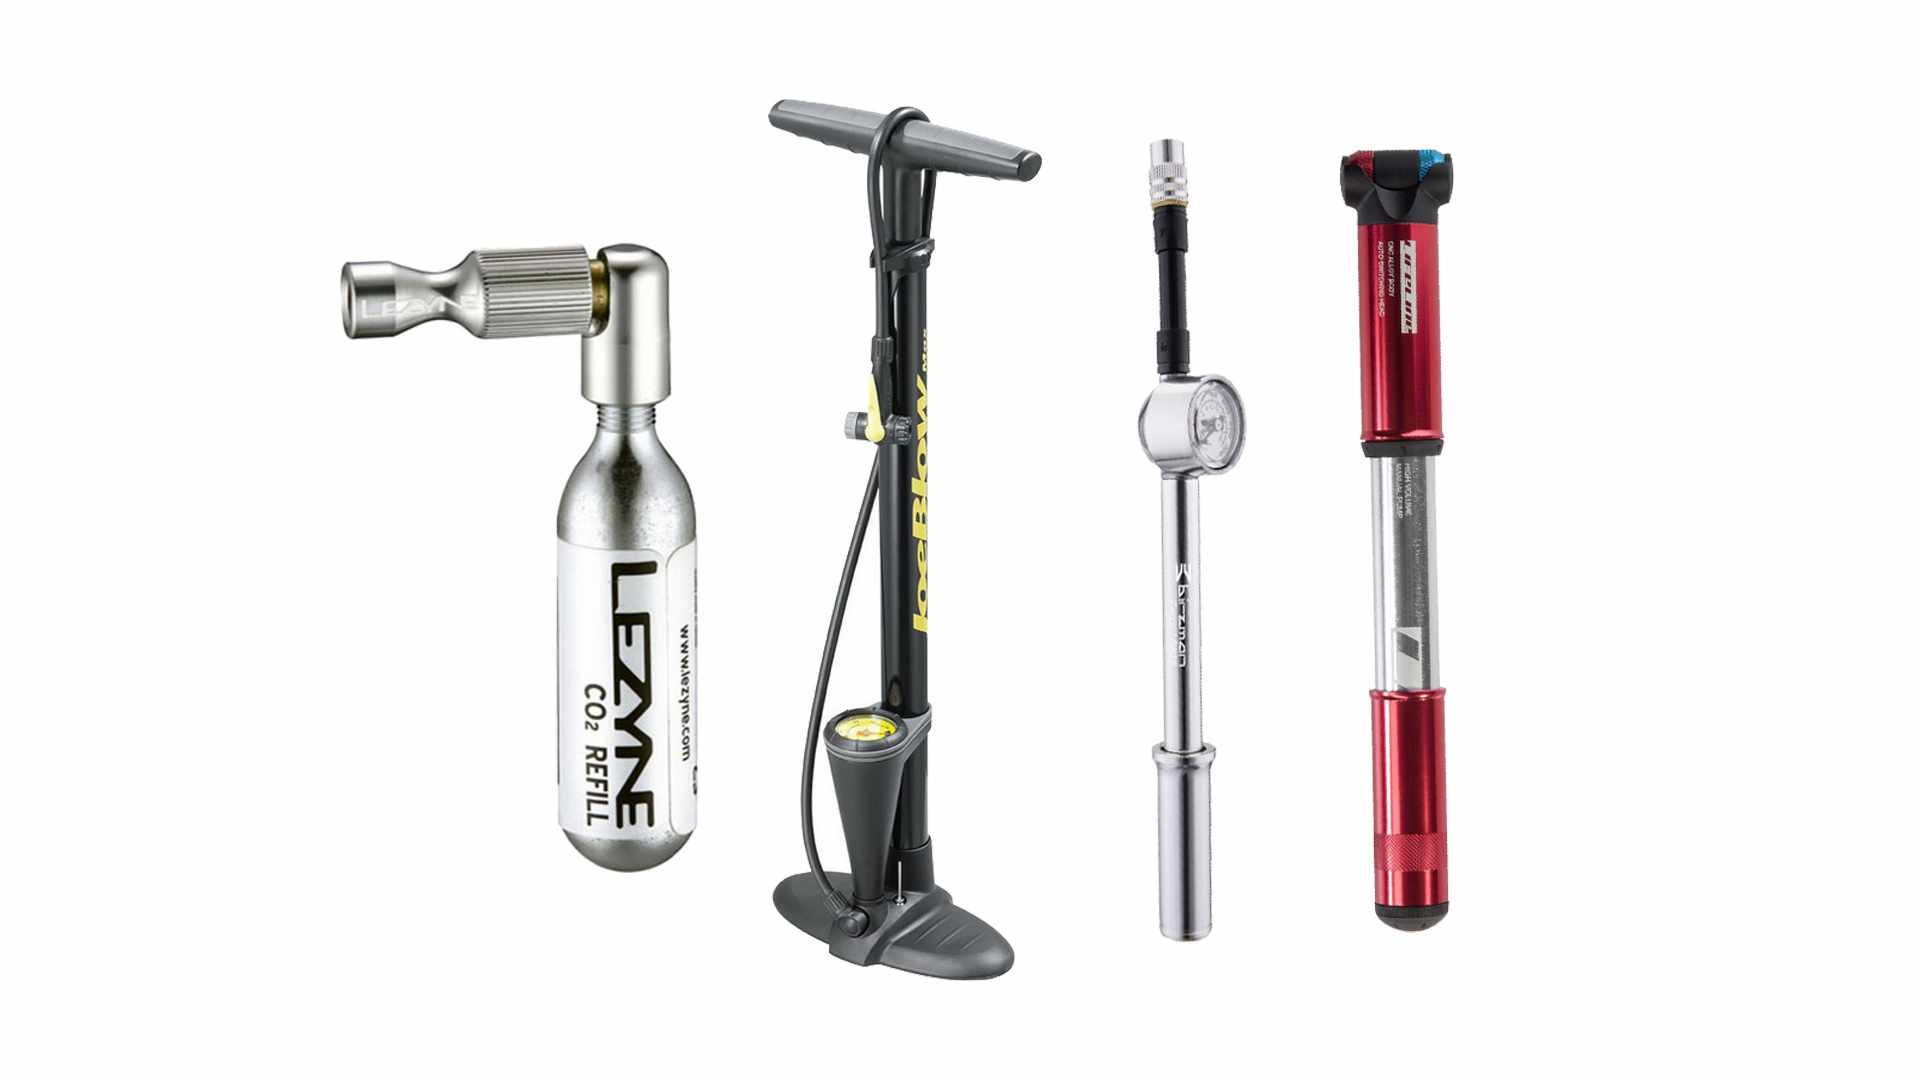 A collage of a track pump, two mini pumps and a CO2 inflator on a white background